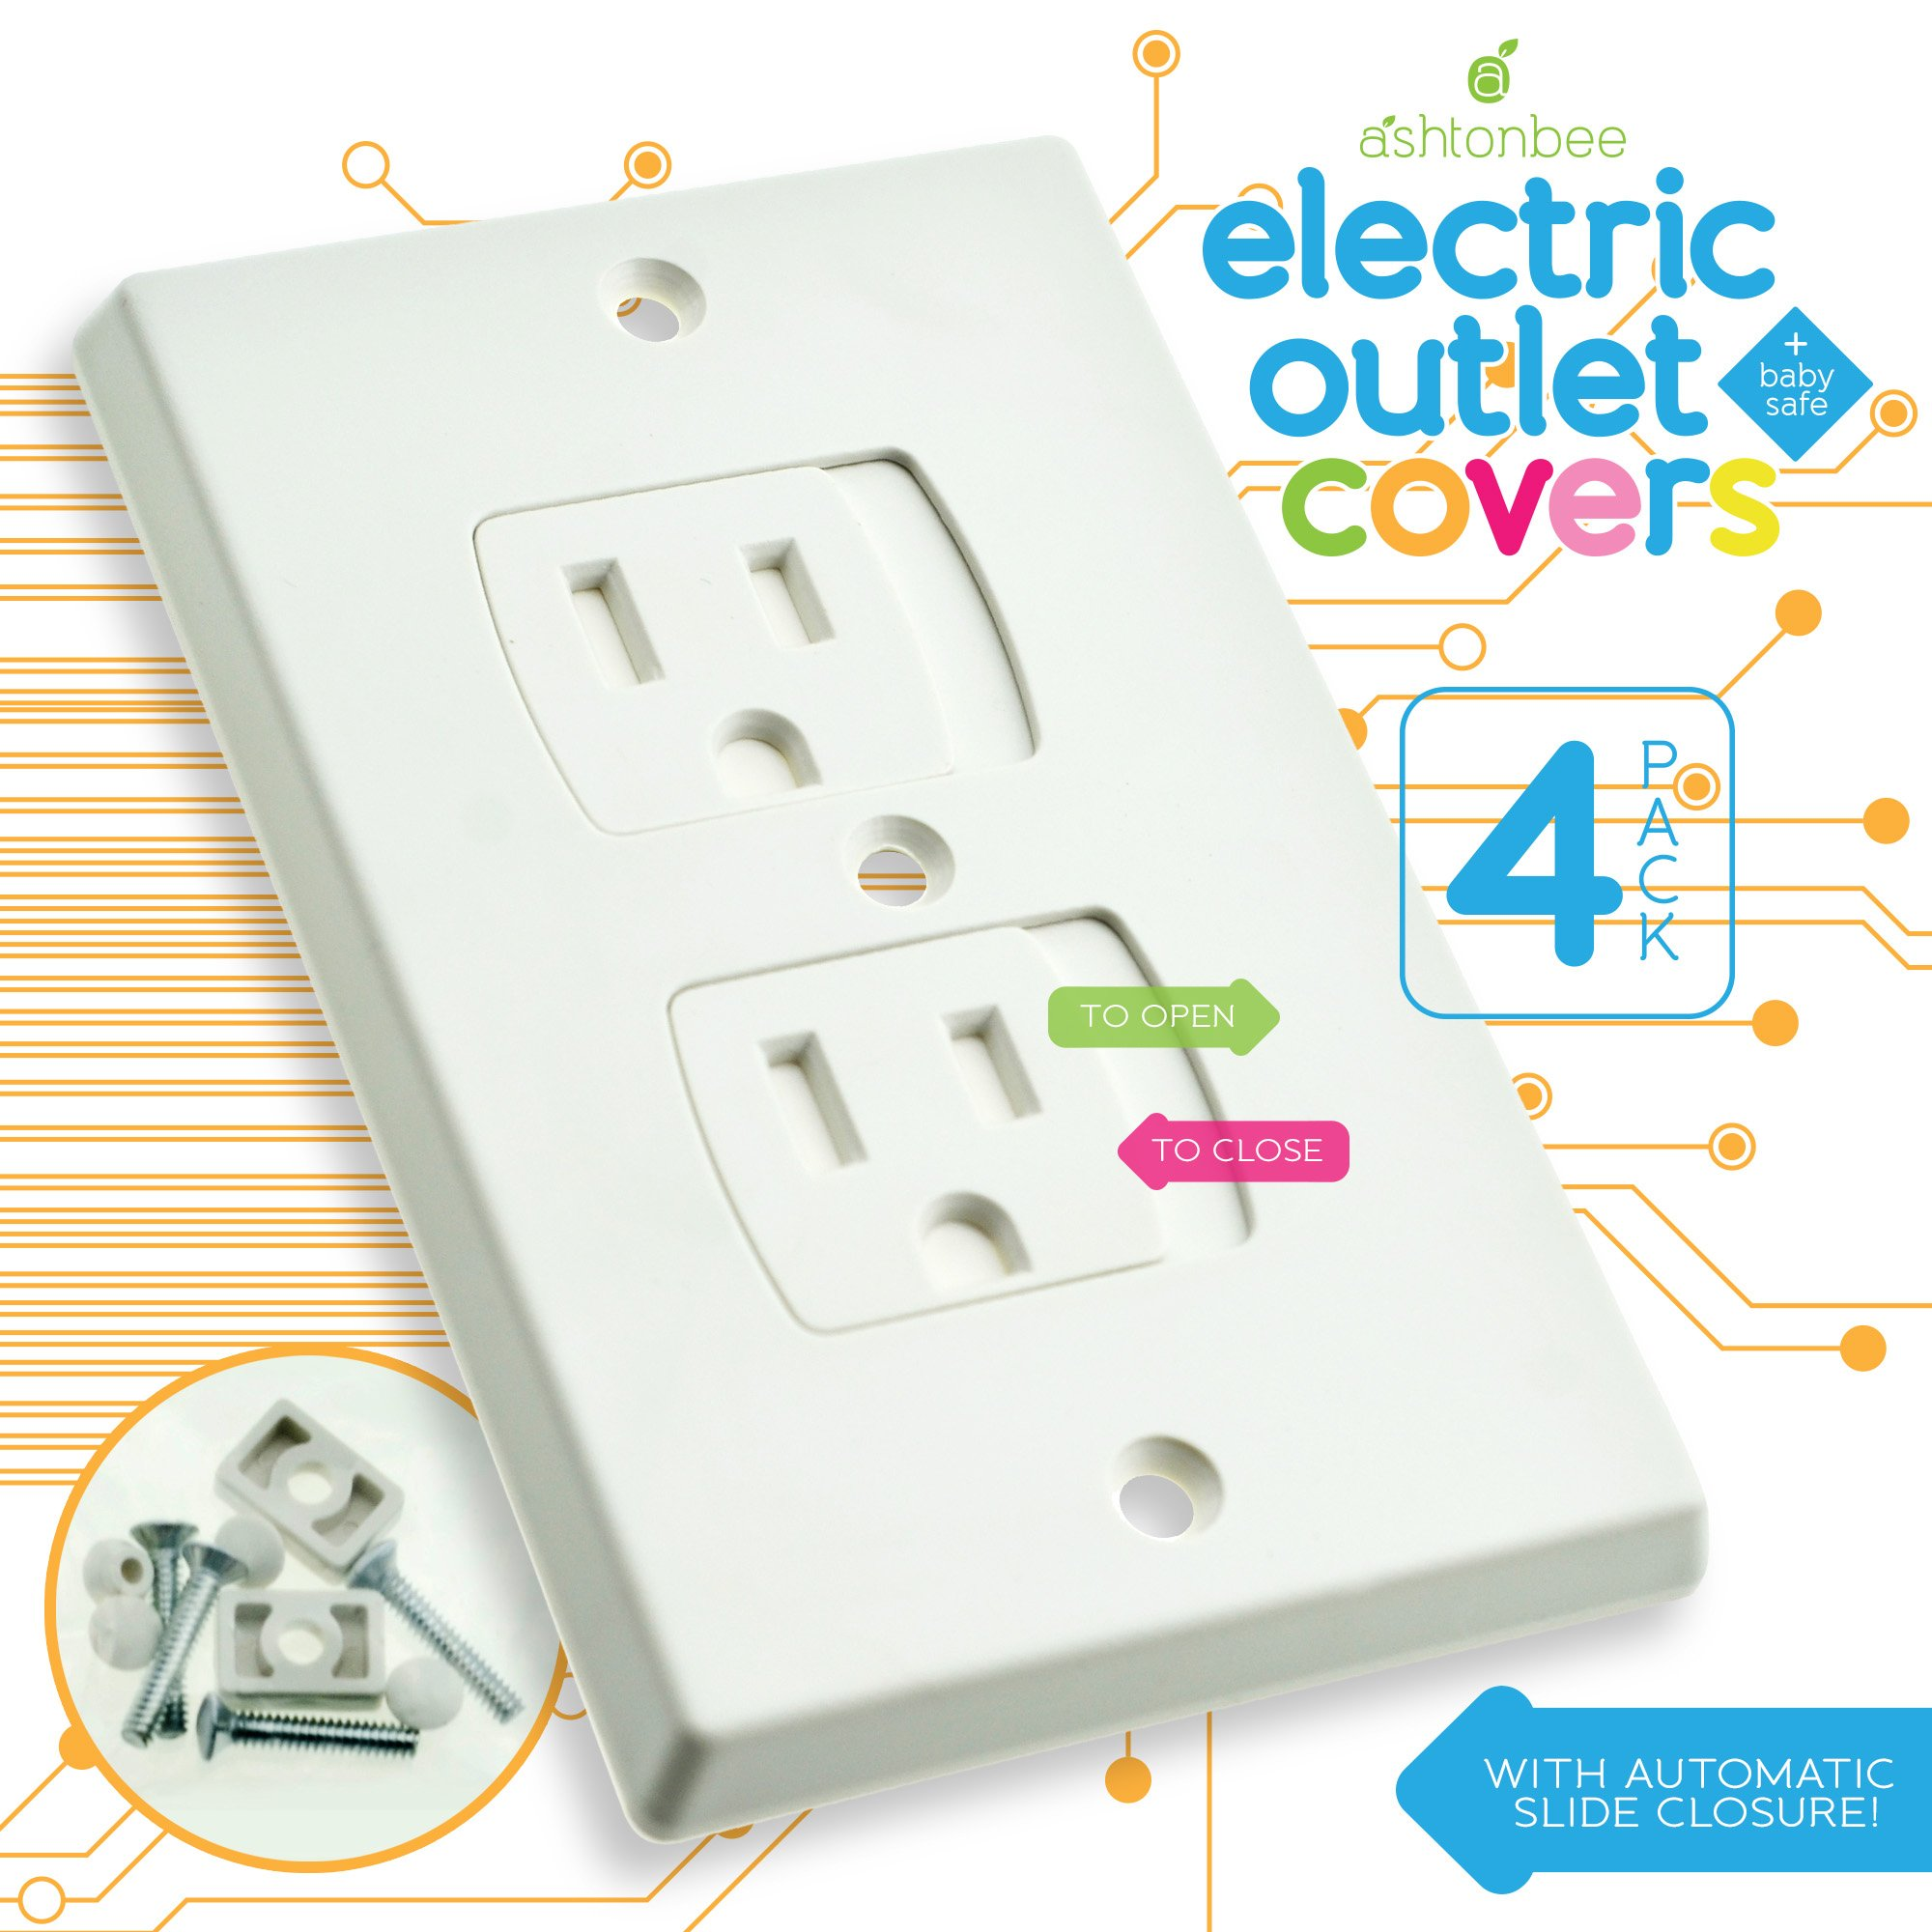 Child Safety Electrical Outlet Covers for Baby Proofing - Best Childproofing Self Closing BPA Free Wall Socket Plate, Better than Plugs (Set of 4, White)